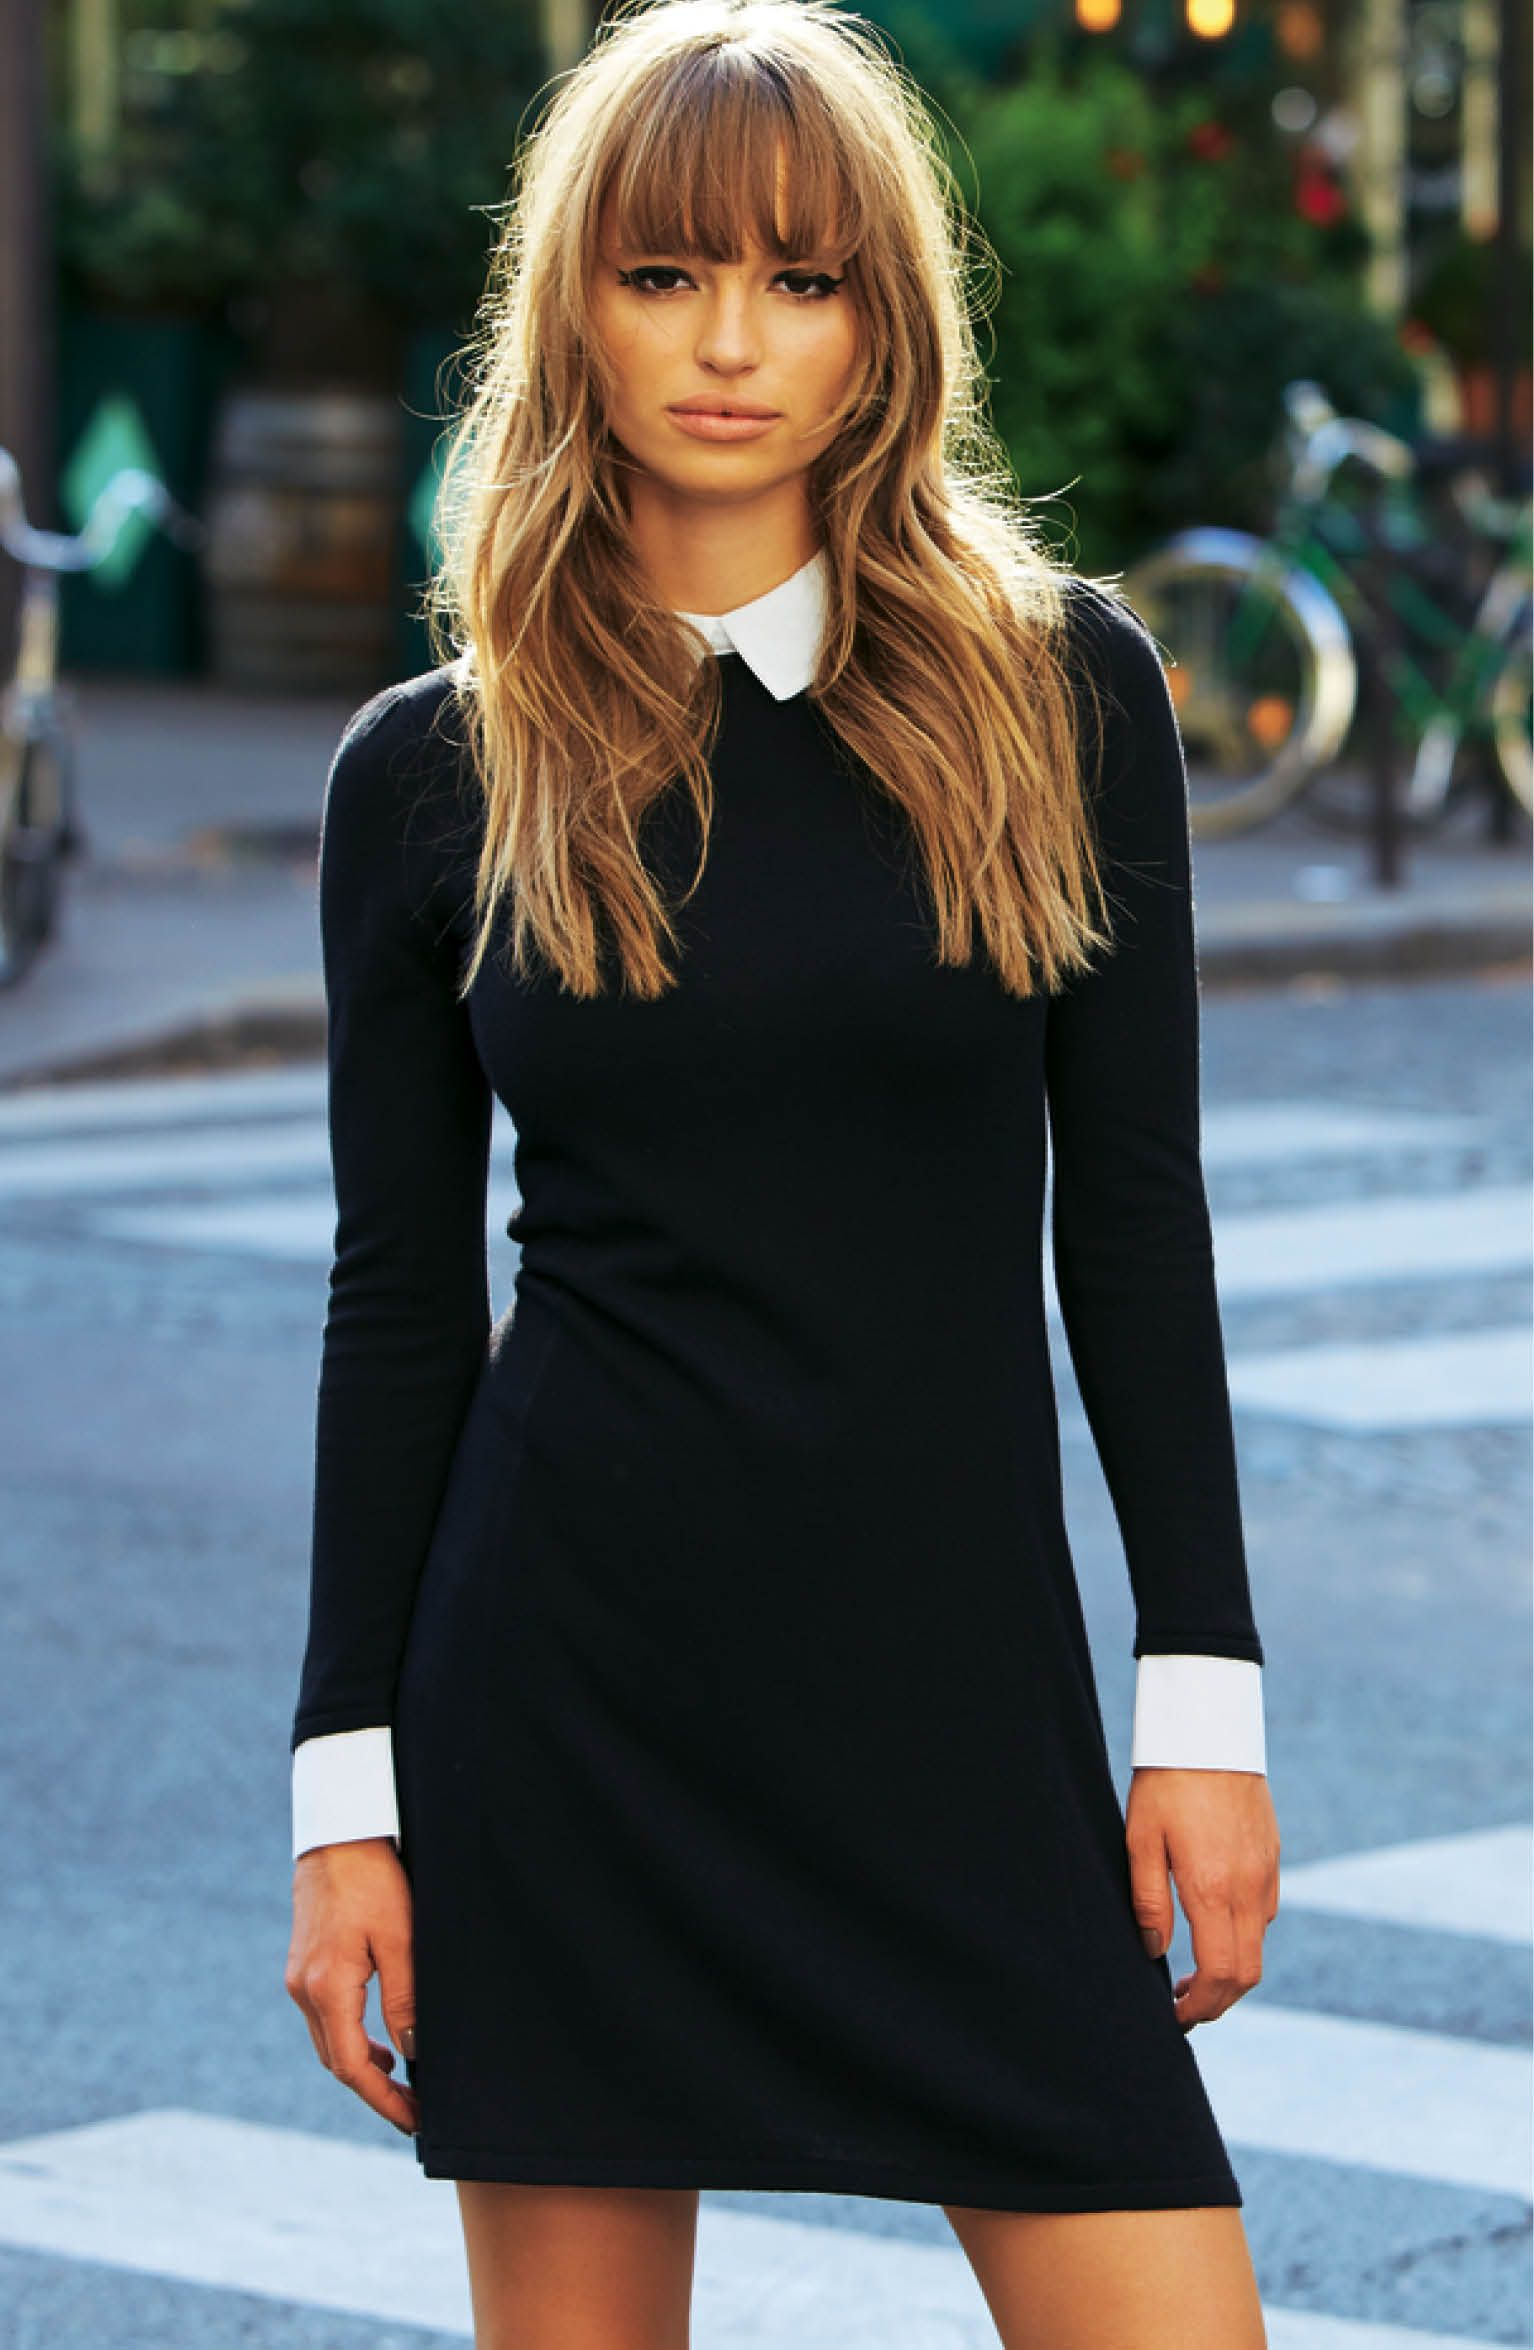 White Shirt Collar Black Sweater Dress With 60s Bangs And Cuffs Perfect Work Outfit [ 2350 x 1534 Pixel ]